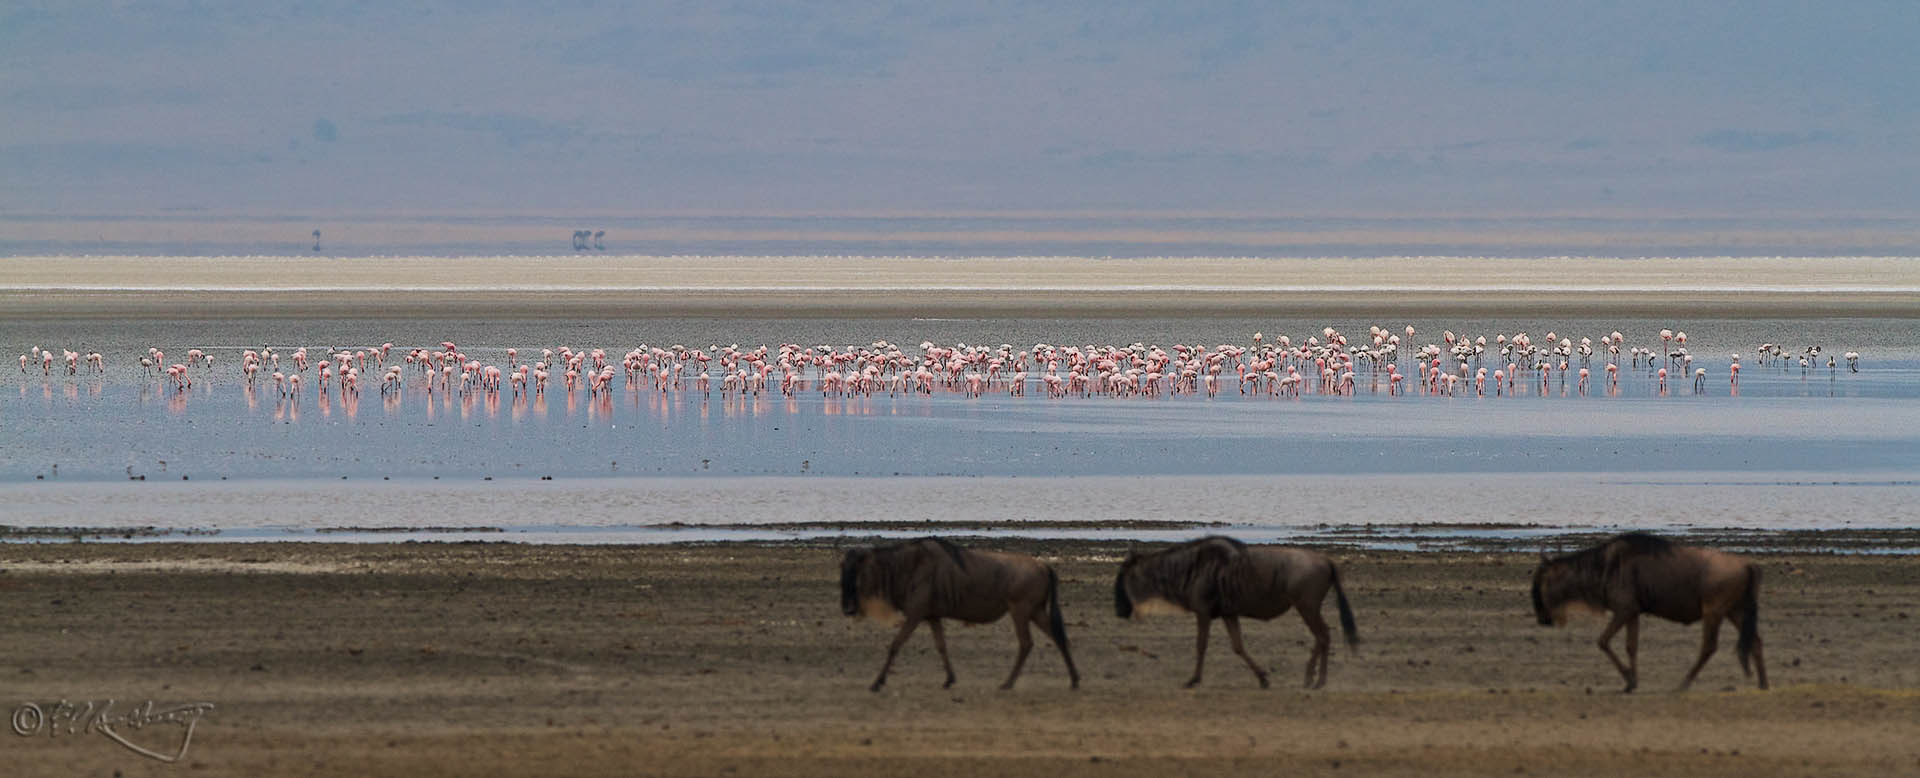 Flamingos_on_Ngorogoro_soda_lake-c100